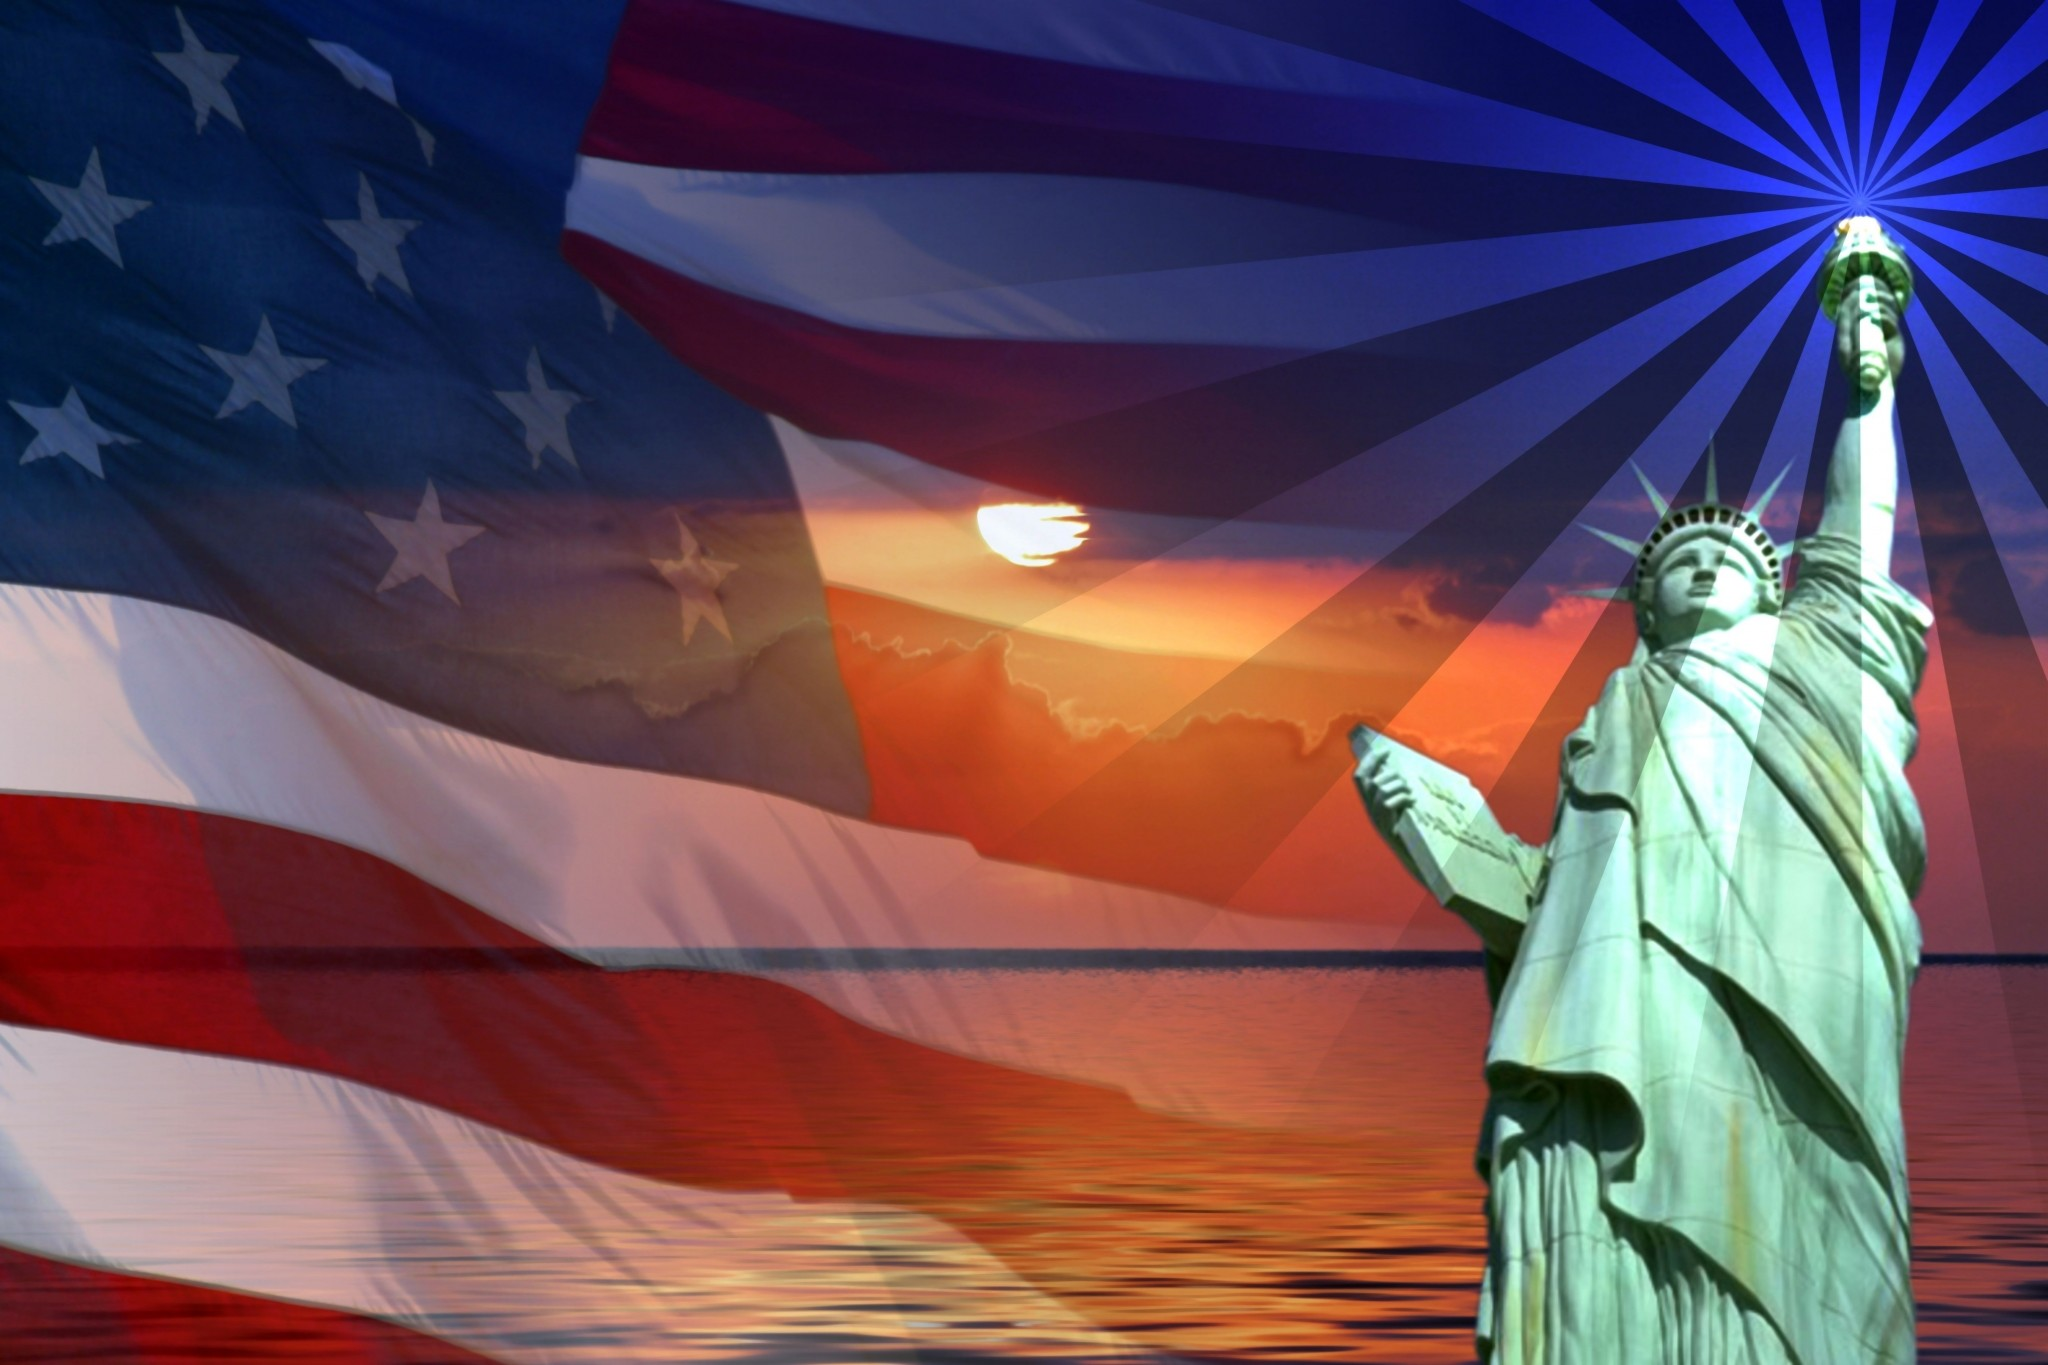 american flag pc backgrounds hd free